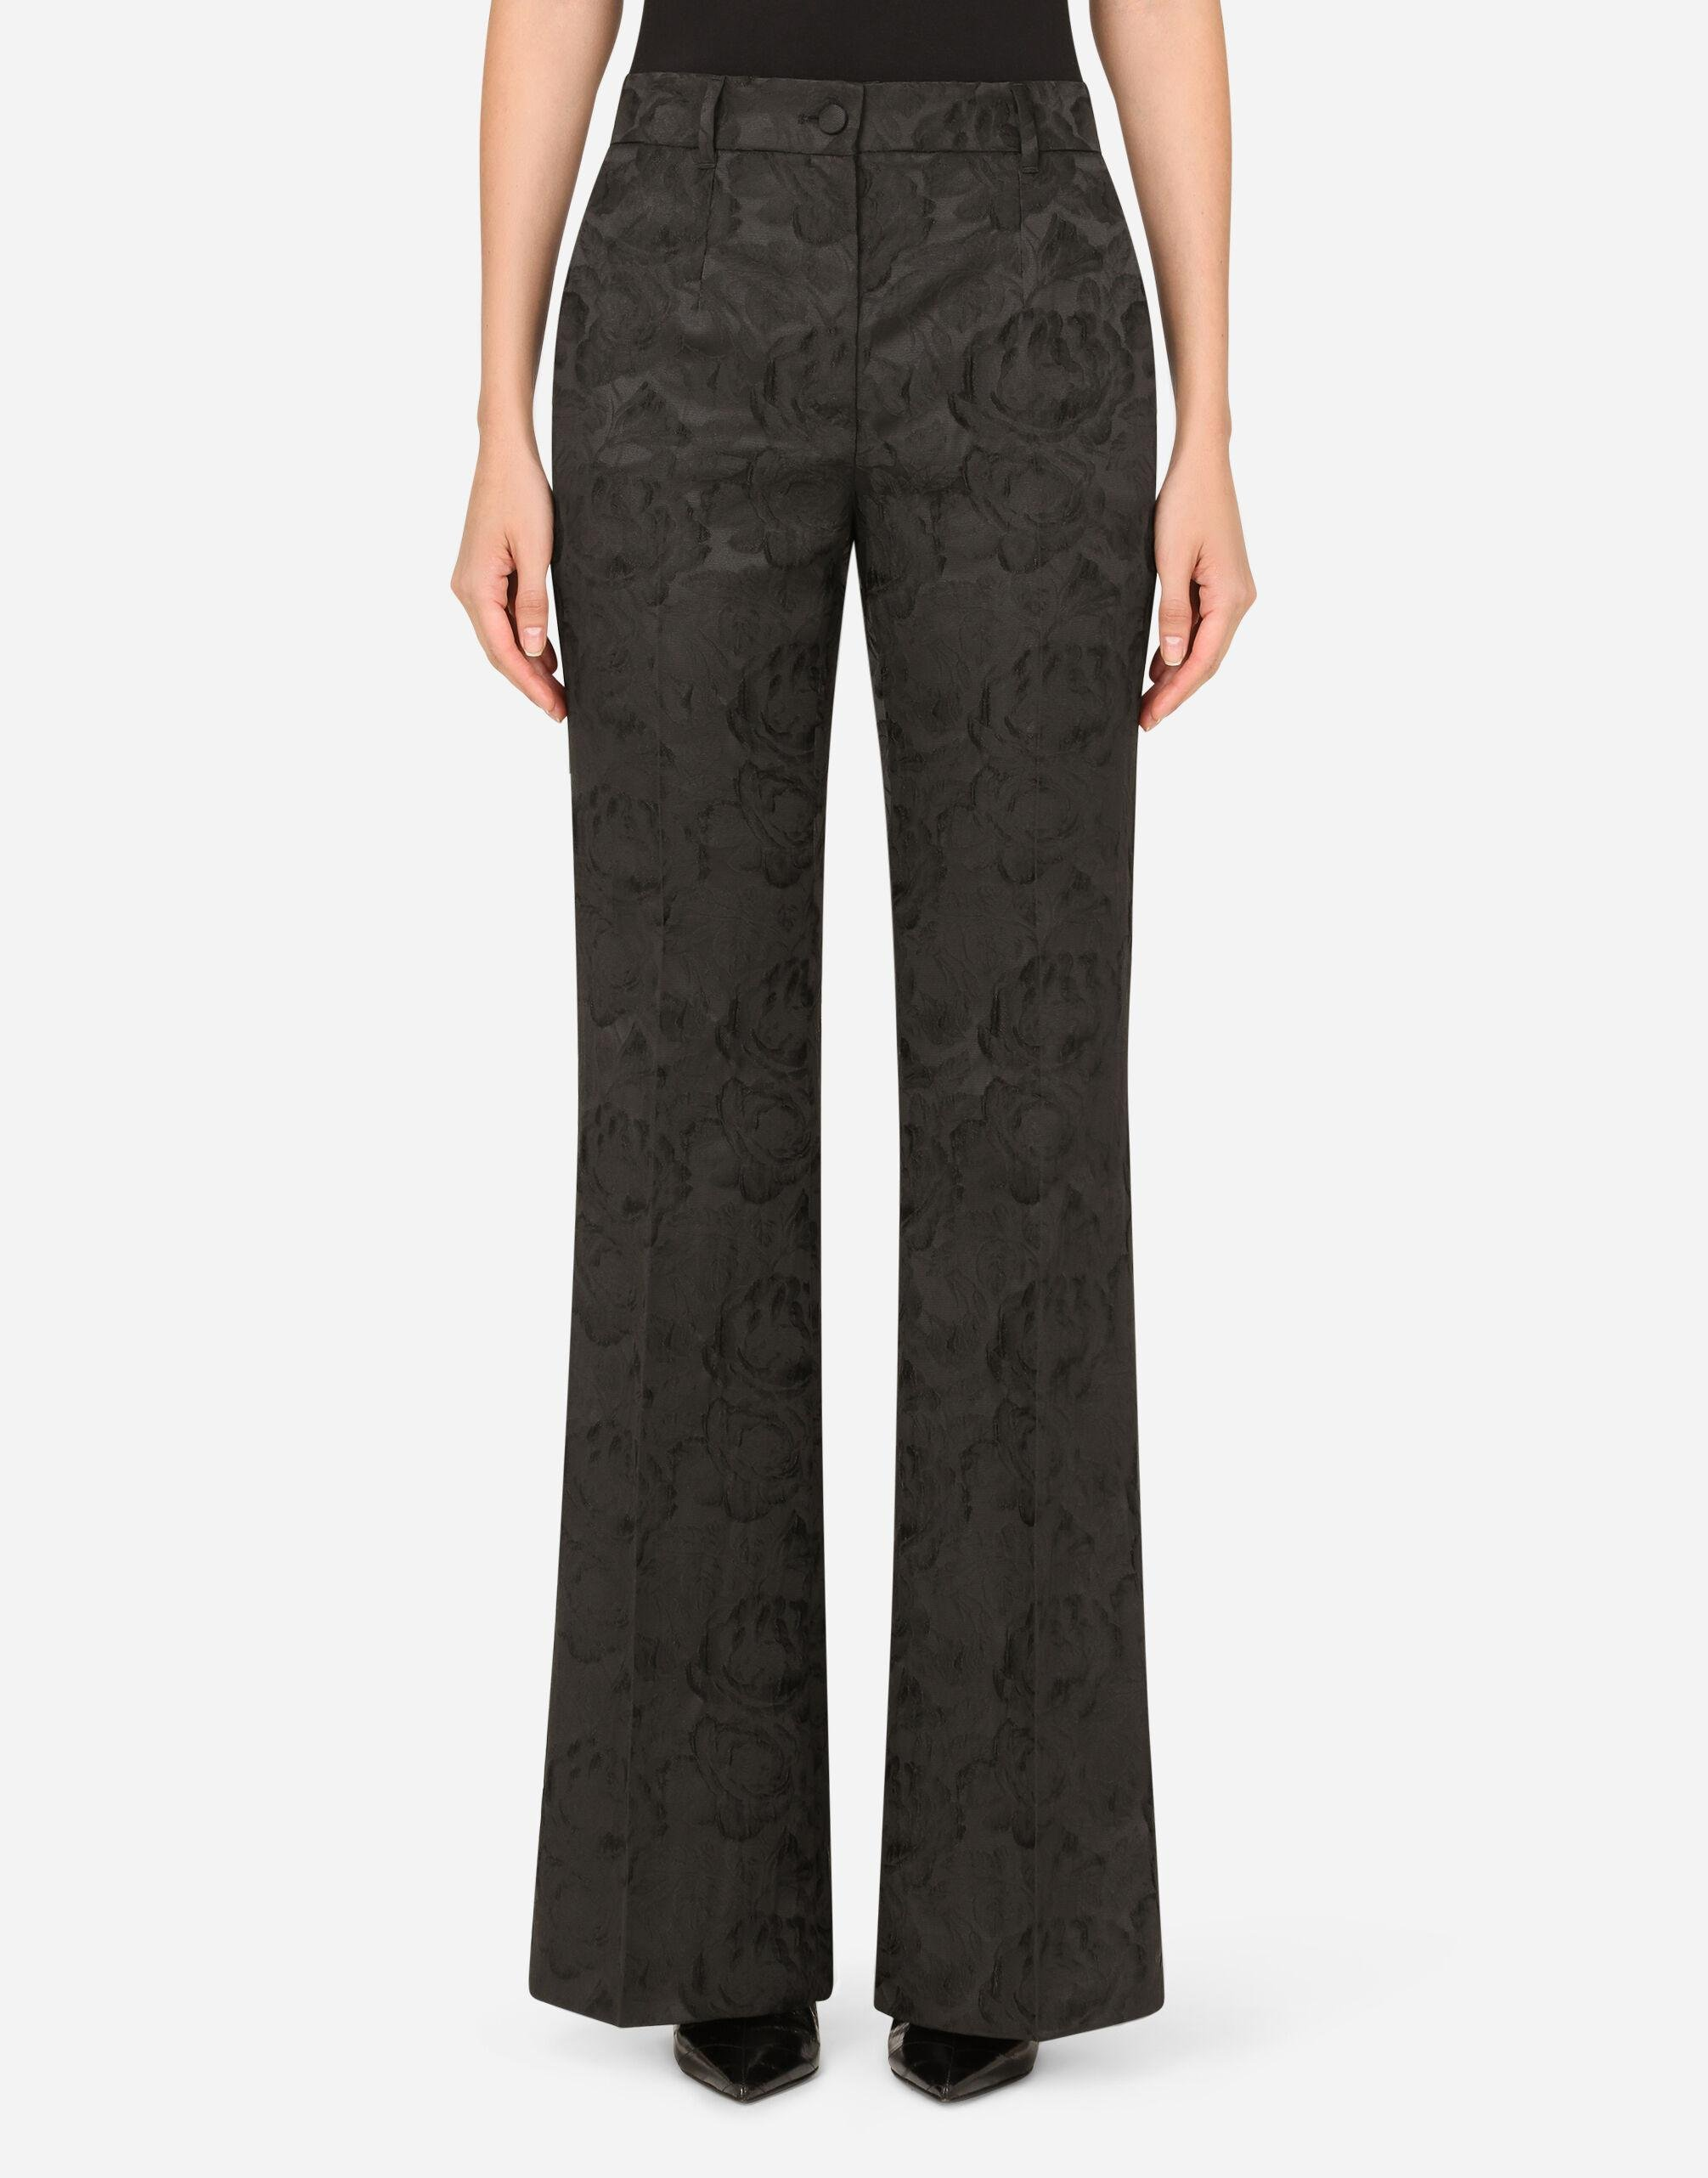 Stretch jacquard pants with braided details